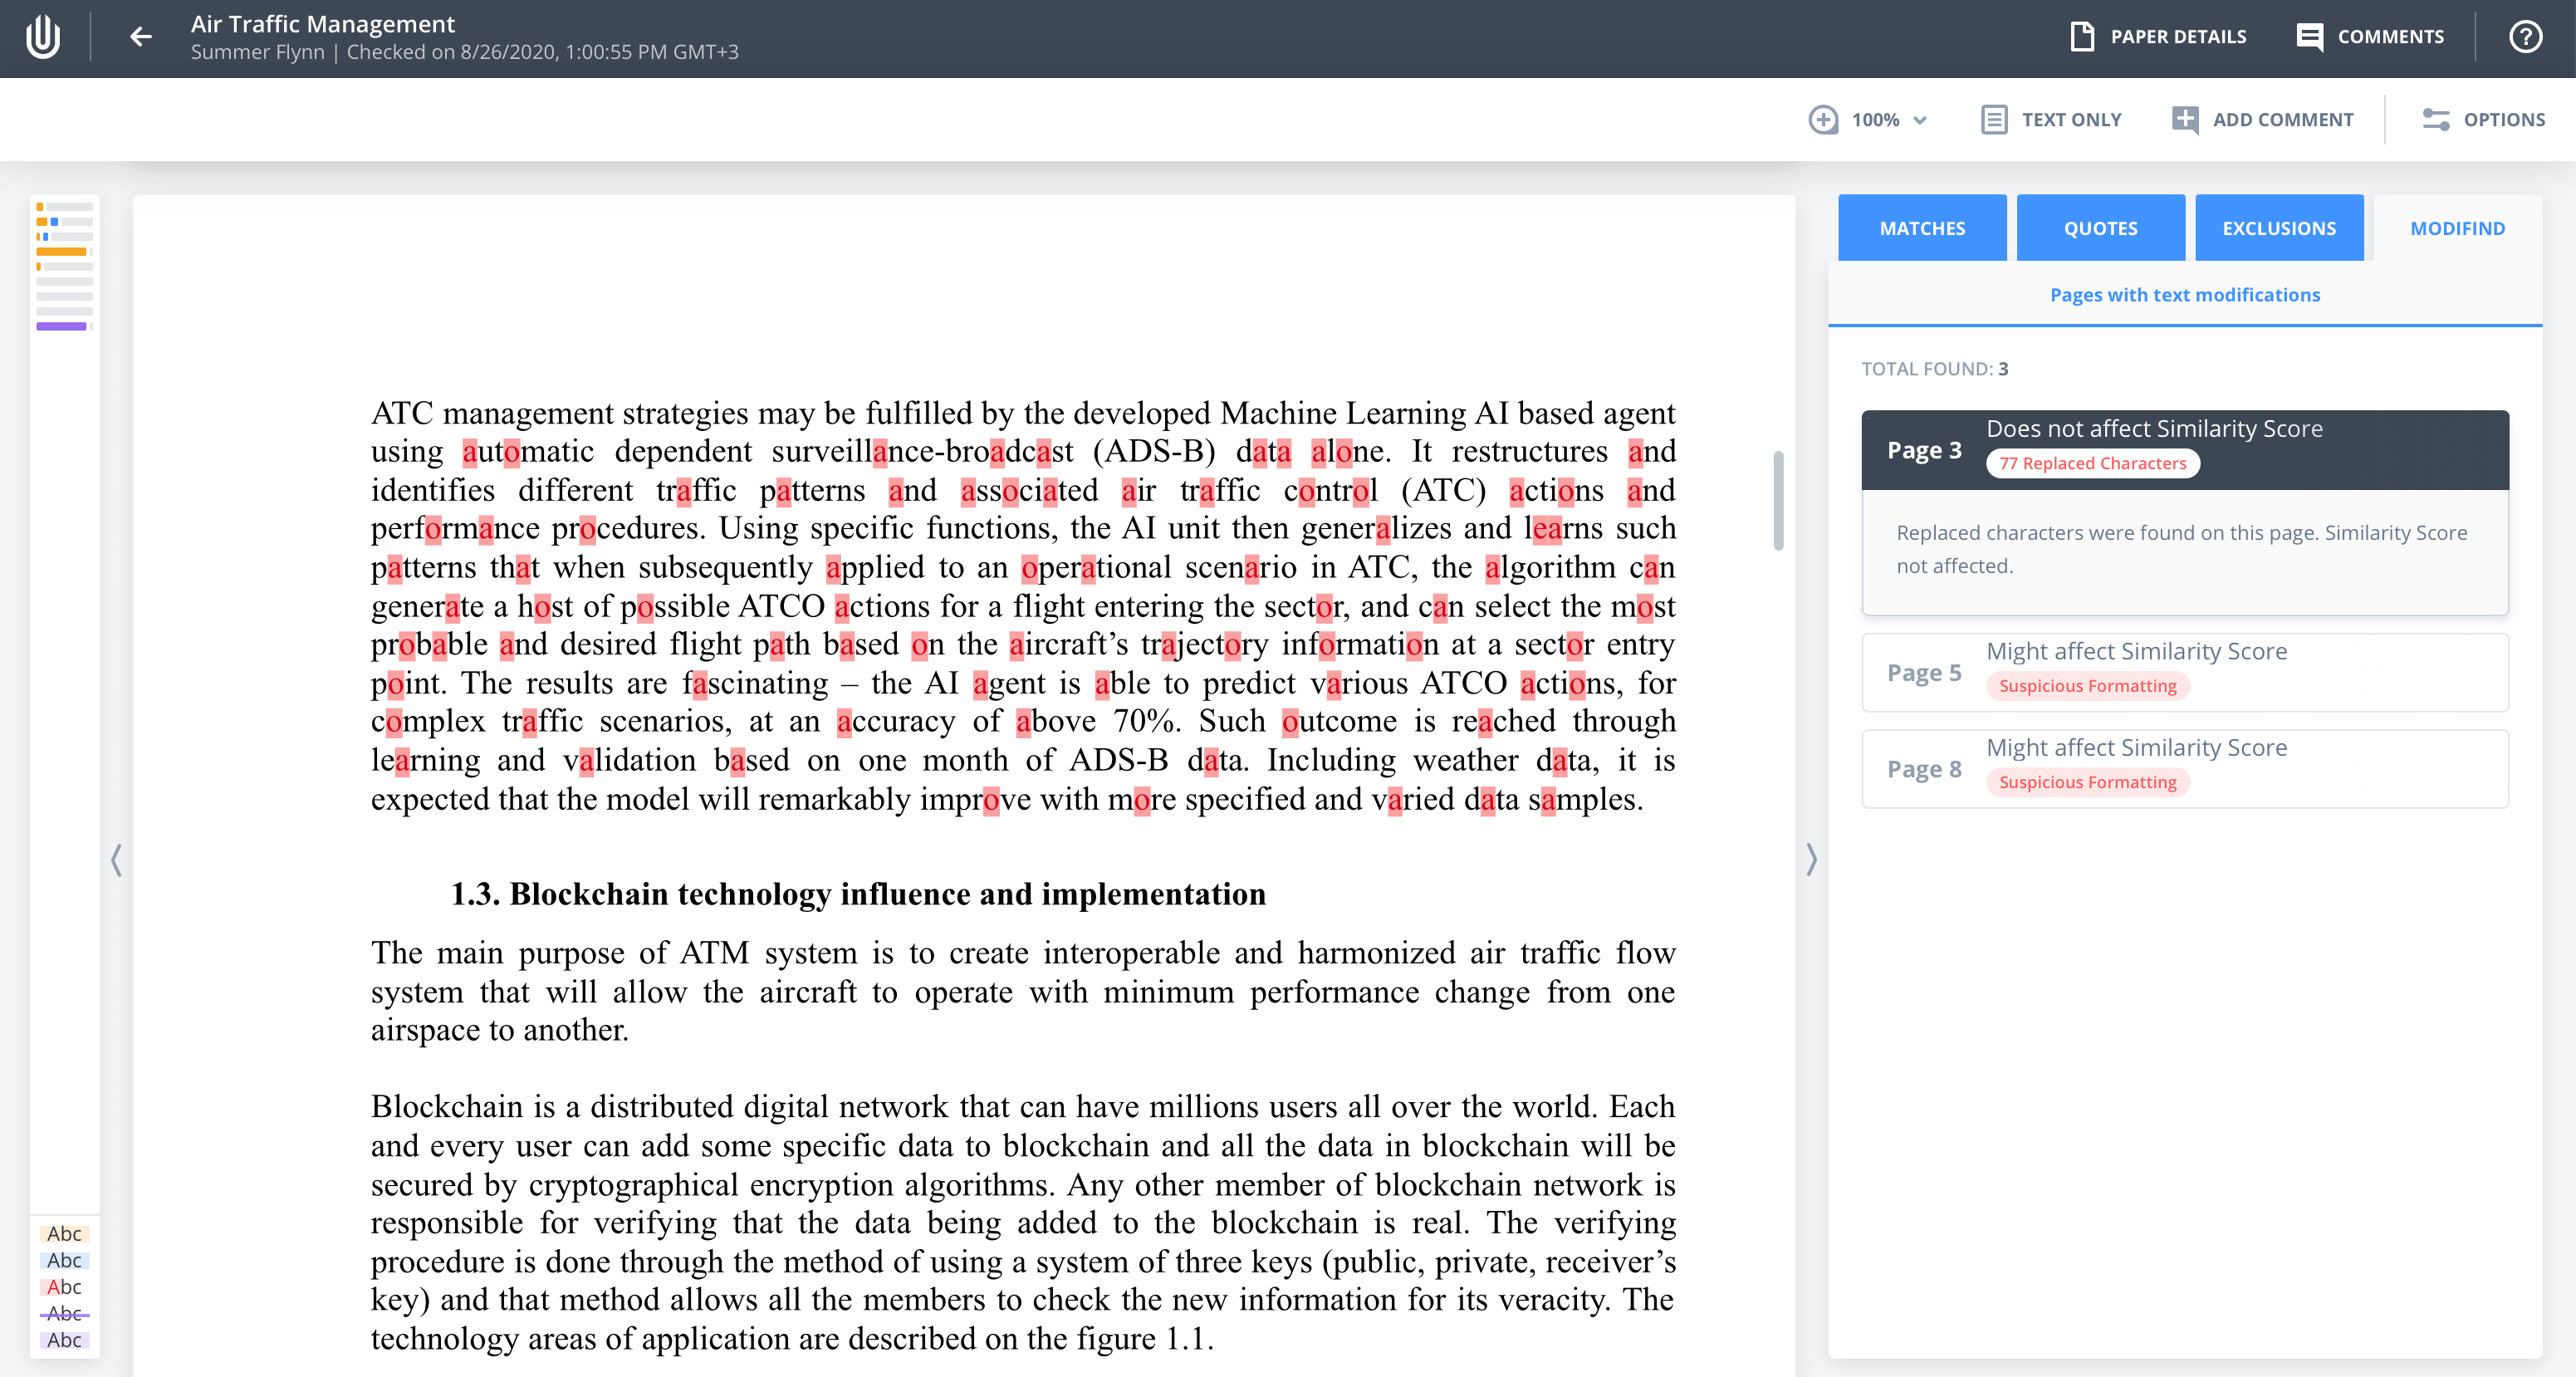 The Modified tab contains all detected cases of text manipulation